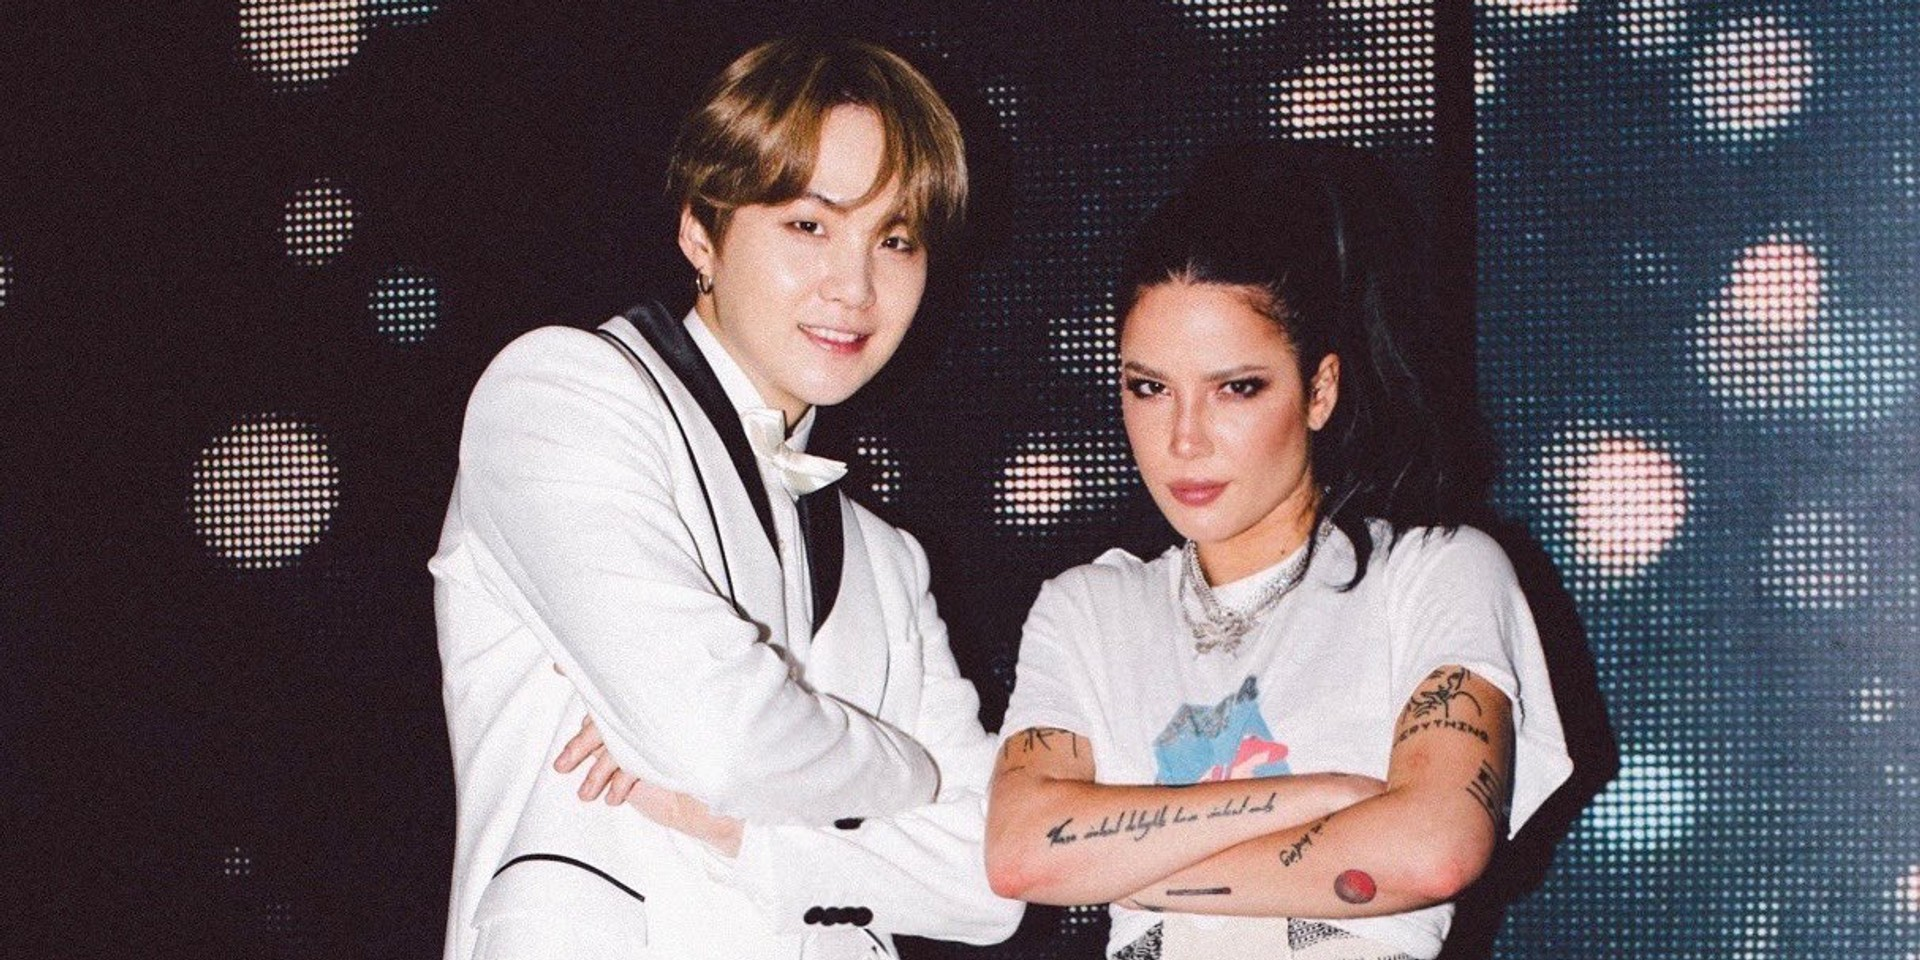 Halsey collaborates with BTS member SUGA on 'SUGA's Interlude'